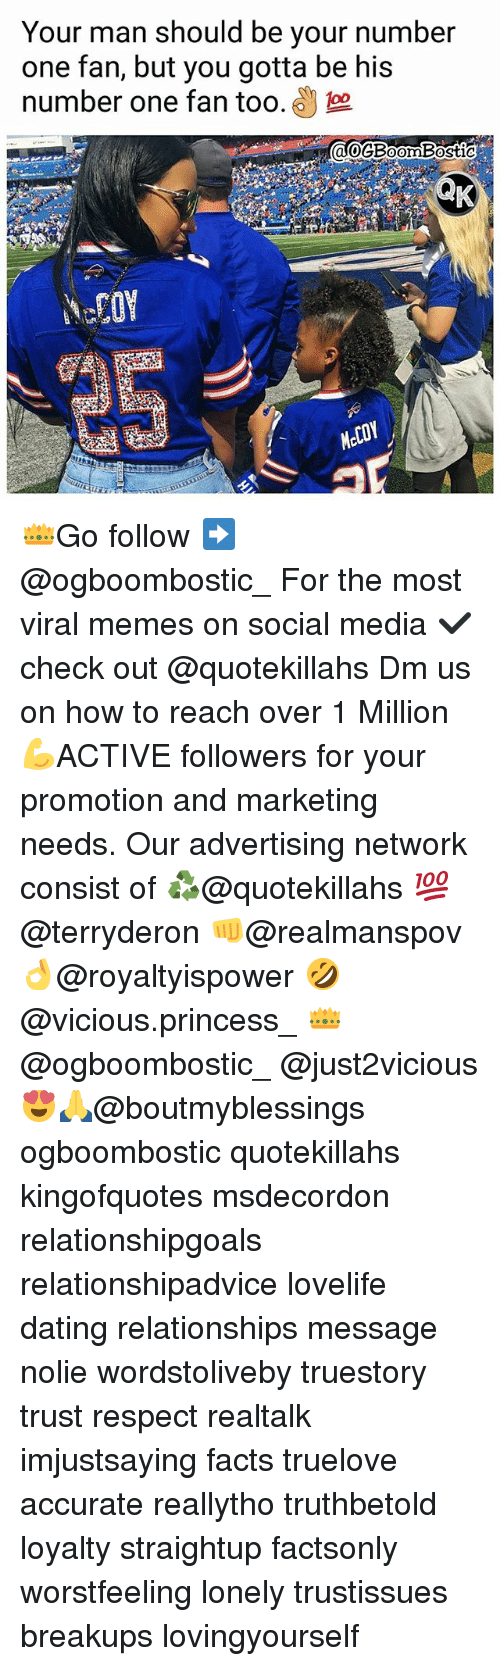 Dating, Facts, and Memes: Your man should be vour number  one fan, but you gotta be his  number one fan too. 3  0GBoomBostiC  Mel 👑Go follow ➡@ogboombostic_ For the most viral memes on social media ✔check out @quotekillahs Dm us on how to reach over 1 Million💪ACTIVE followers for your promotion and marketing needs. Our advertising network consist of ♻@quotekillahs 💯@terryderon 👊@realmanspov 👌@royaltyispower 🤣@vicious.princess_ 👑@ogboombostic_ @just2vicious😍🙏@boutmyblessings ogboombostic quotekillahs kingofquotes msdecordon relationshipgoals relationshipadvice lovelife dating relationships message nolie wordstoliveby truestory trust respect realtalk imjustsaying facts truelove accurate reallytho truthbetold loyalty straightup factsonly worstfeeling lonely trustissues breakups lovingyourself